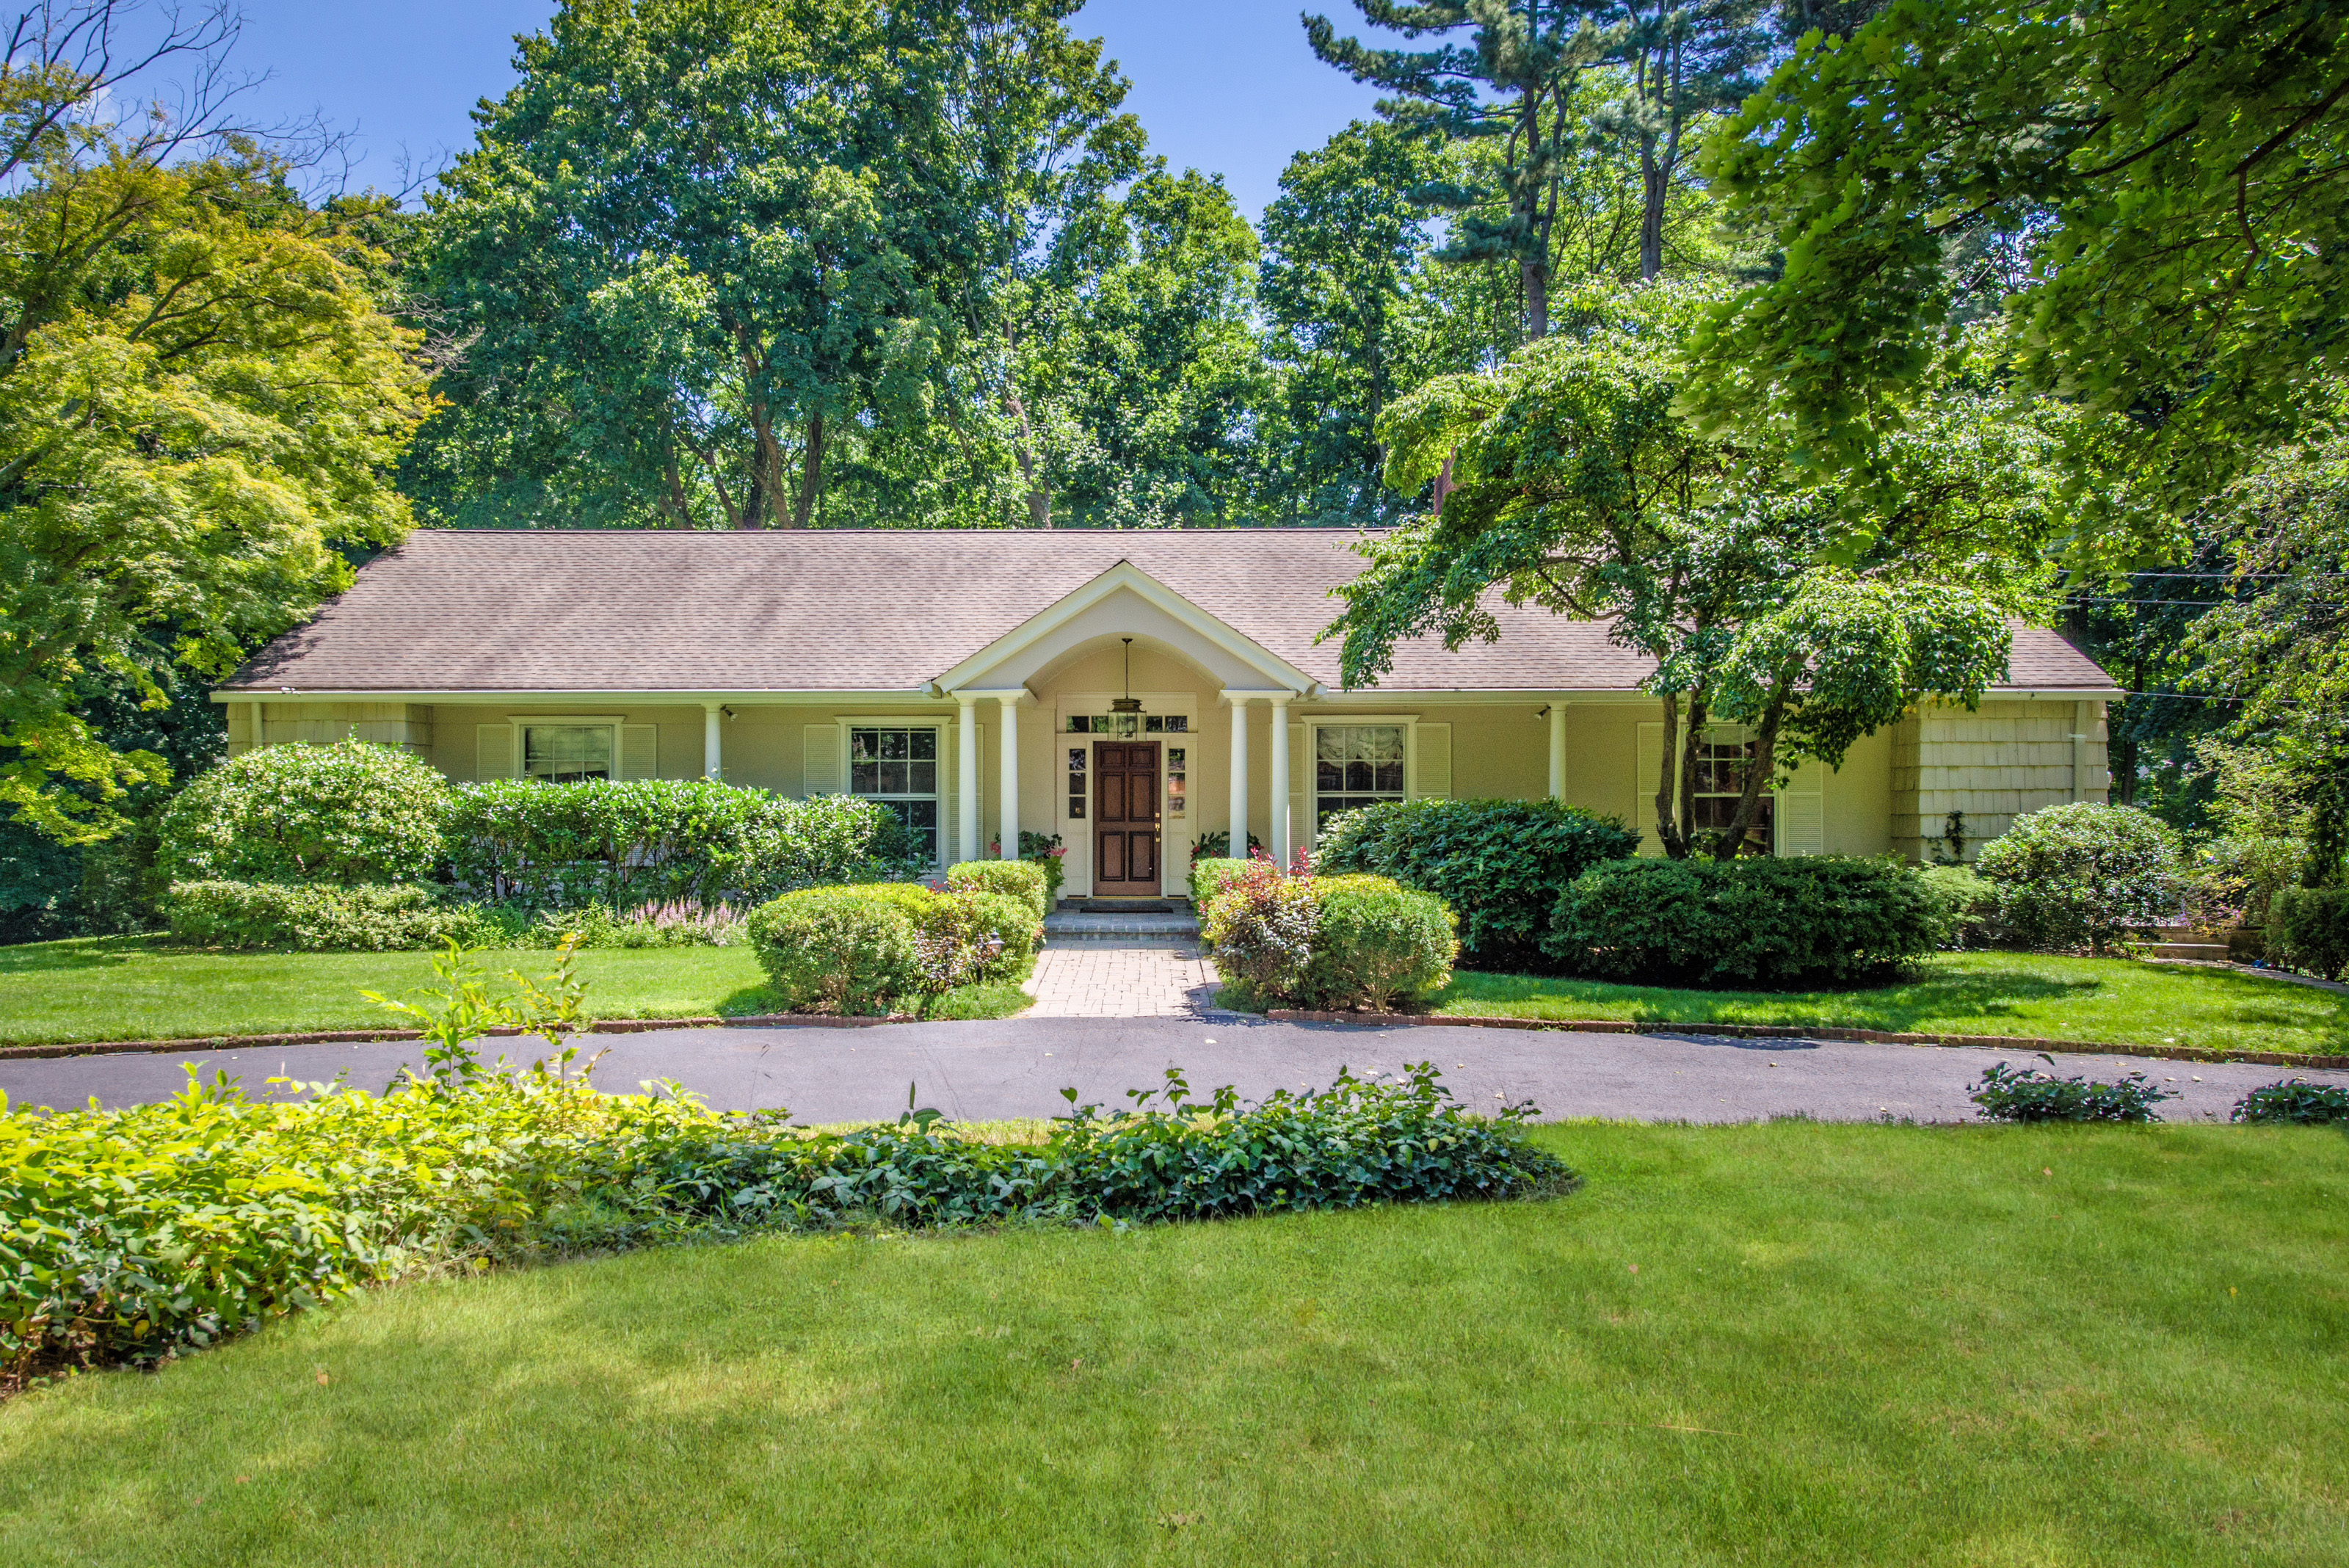 Single Family Home for Sale at Ranch 59 Simonson Rd Old Brookville, New York 11545 United States